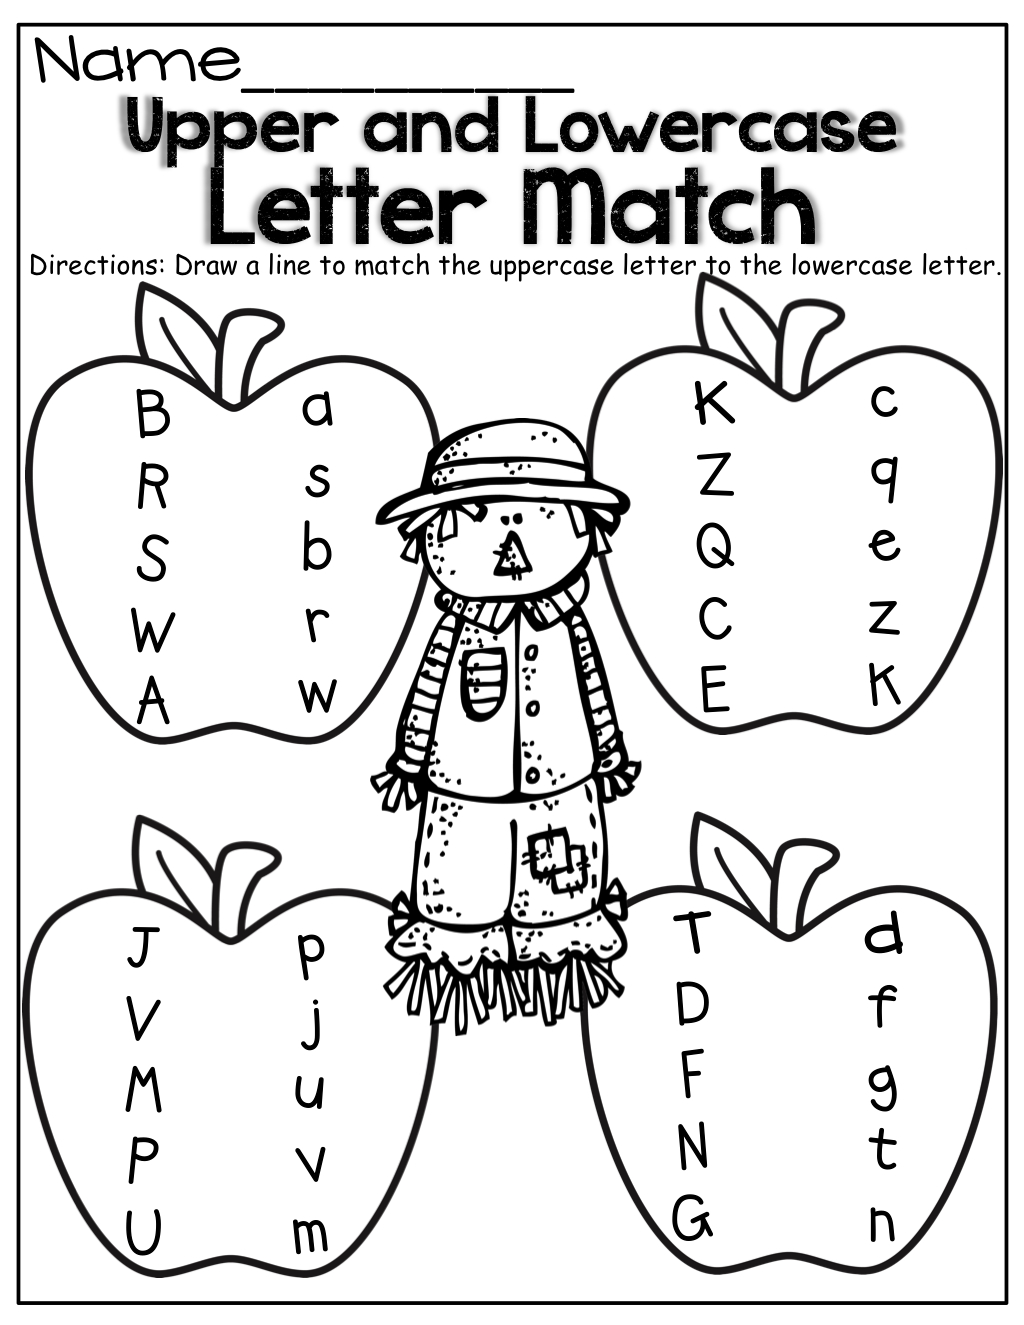 Upper And Lowercase Letter Match! | Kindergarten Worksheets throughout Alphabet Worksheets Upper And Lowercase